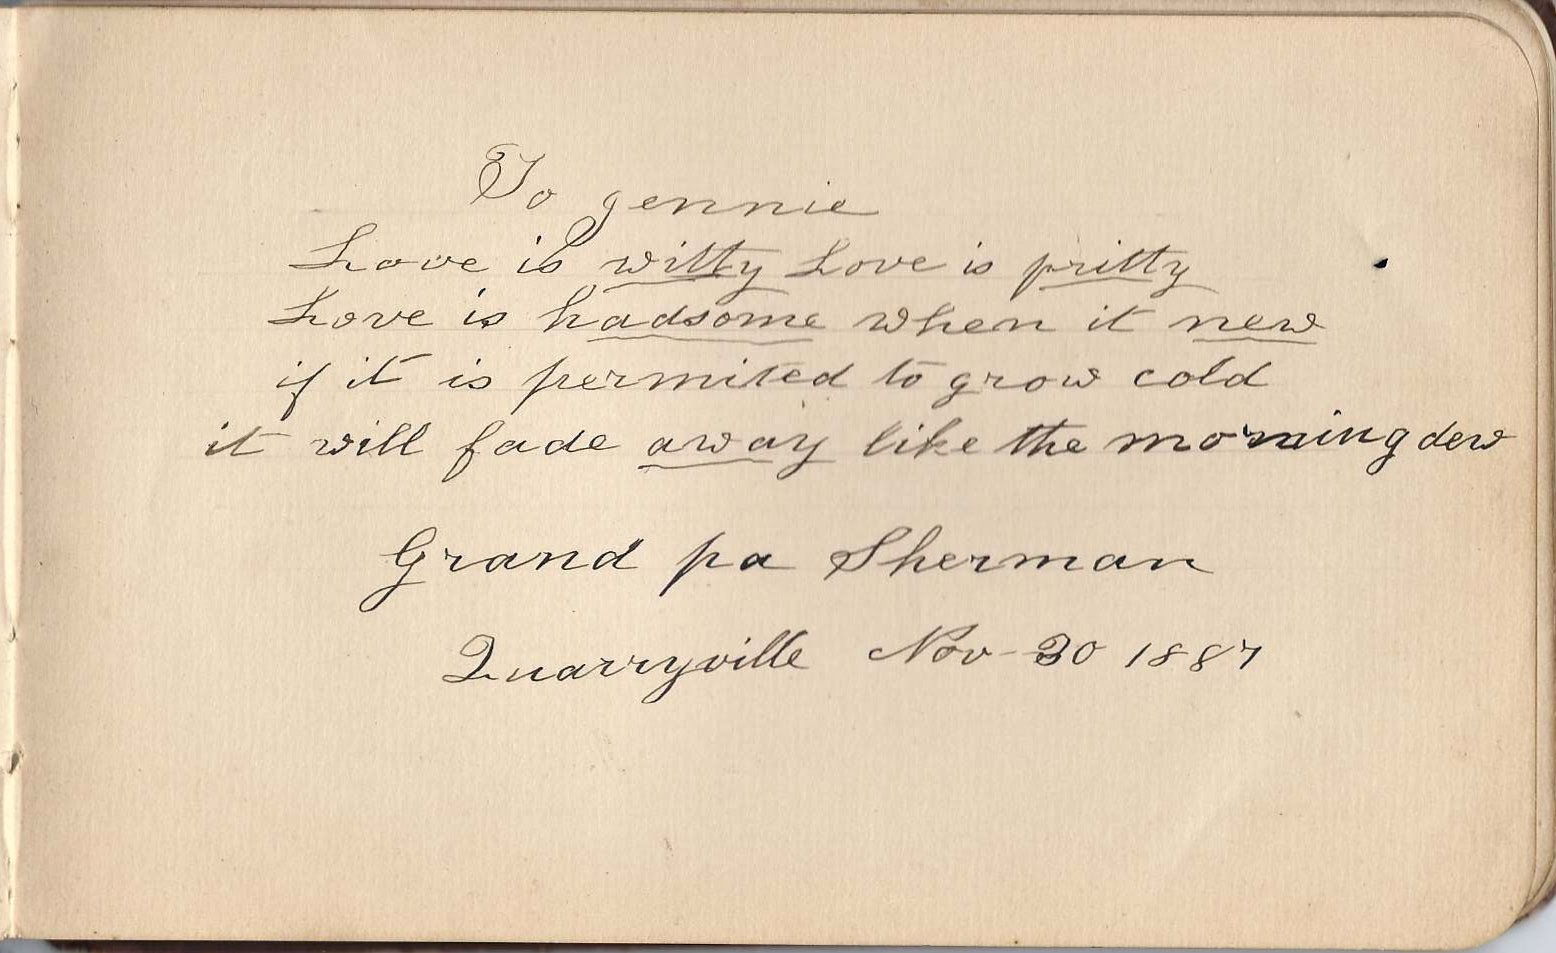 heirlooms reunited s autograph album of jennie of bolton i found a jennie sherman daughter of eber e and lydia robertson sherman who married frank burnap her grandfather was william sherman